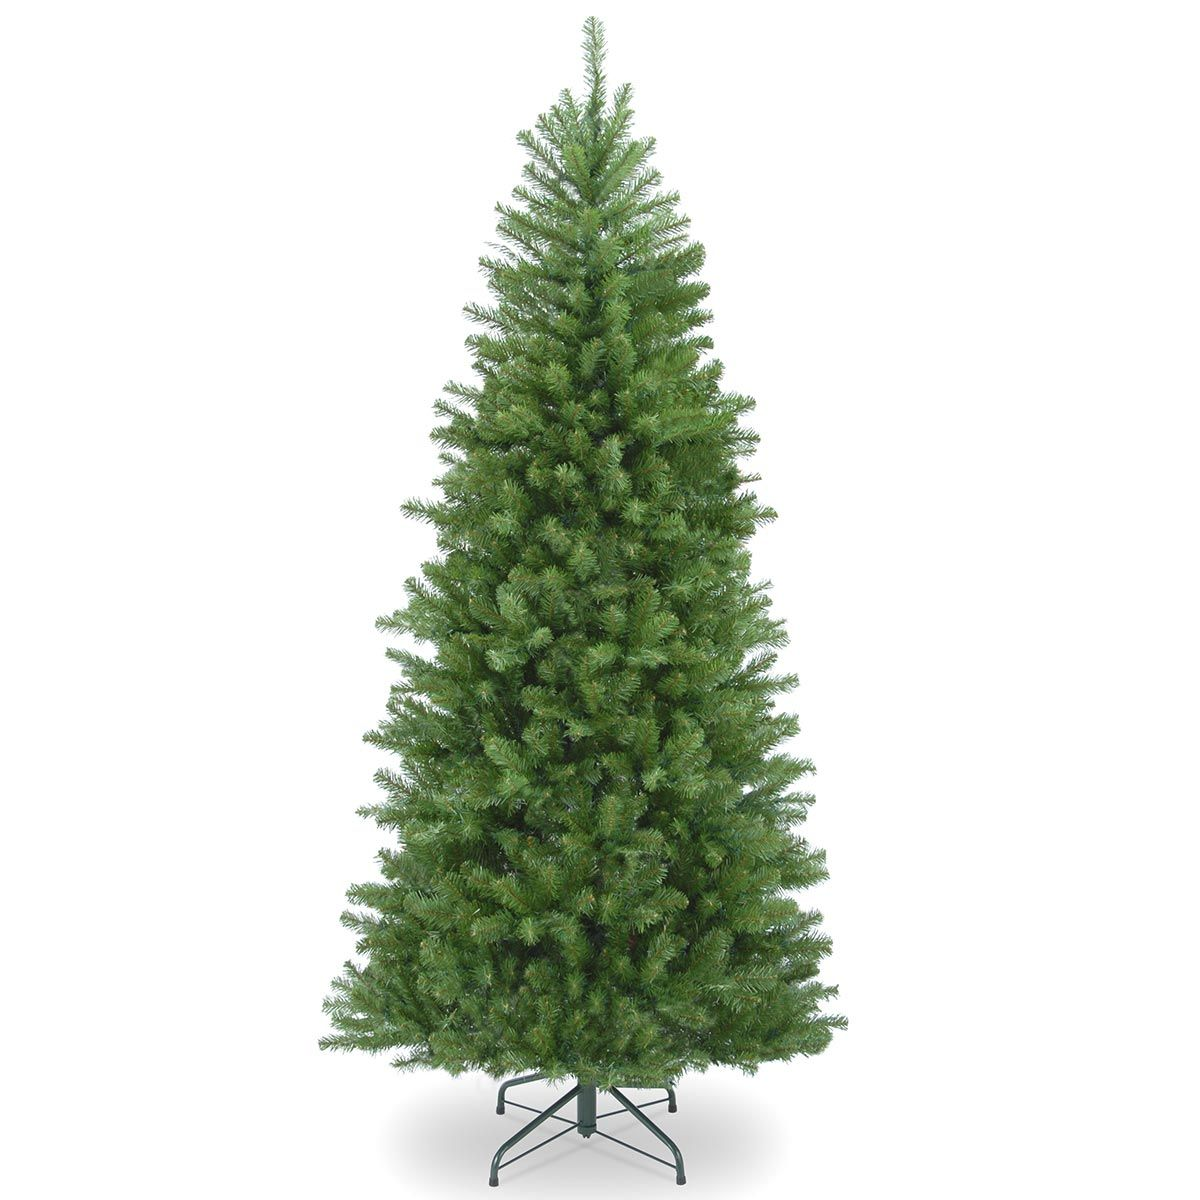 Columbia Christmas Tree: 5.5ft Columbia Spruce Slim Artificial Christmas Tree